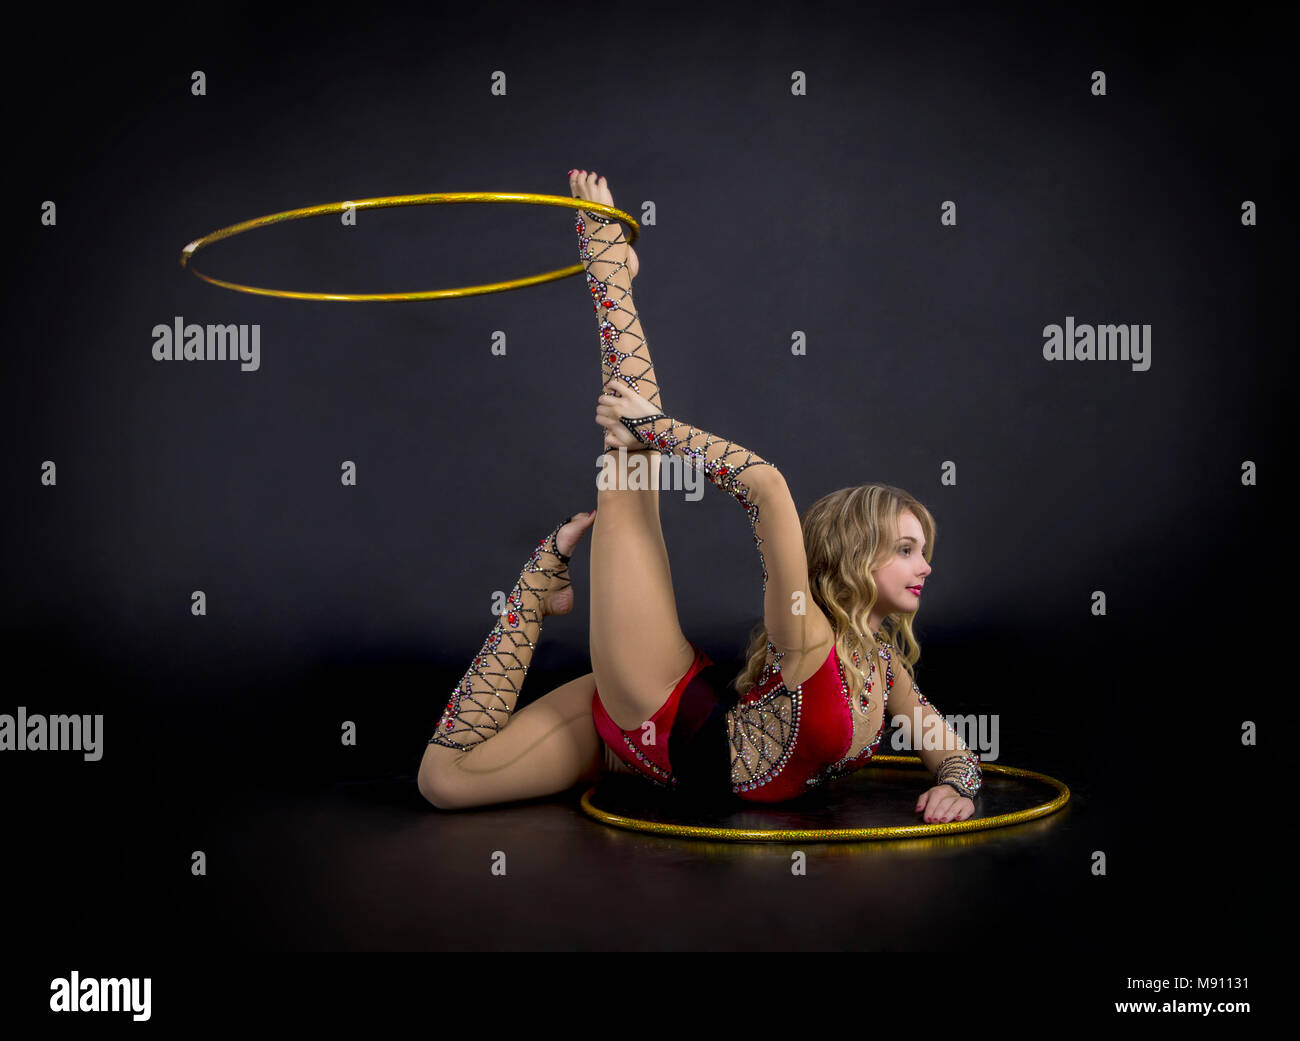 The contortionist girl in stage costume with hoops. Studio shot on dark background. - Stock Image